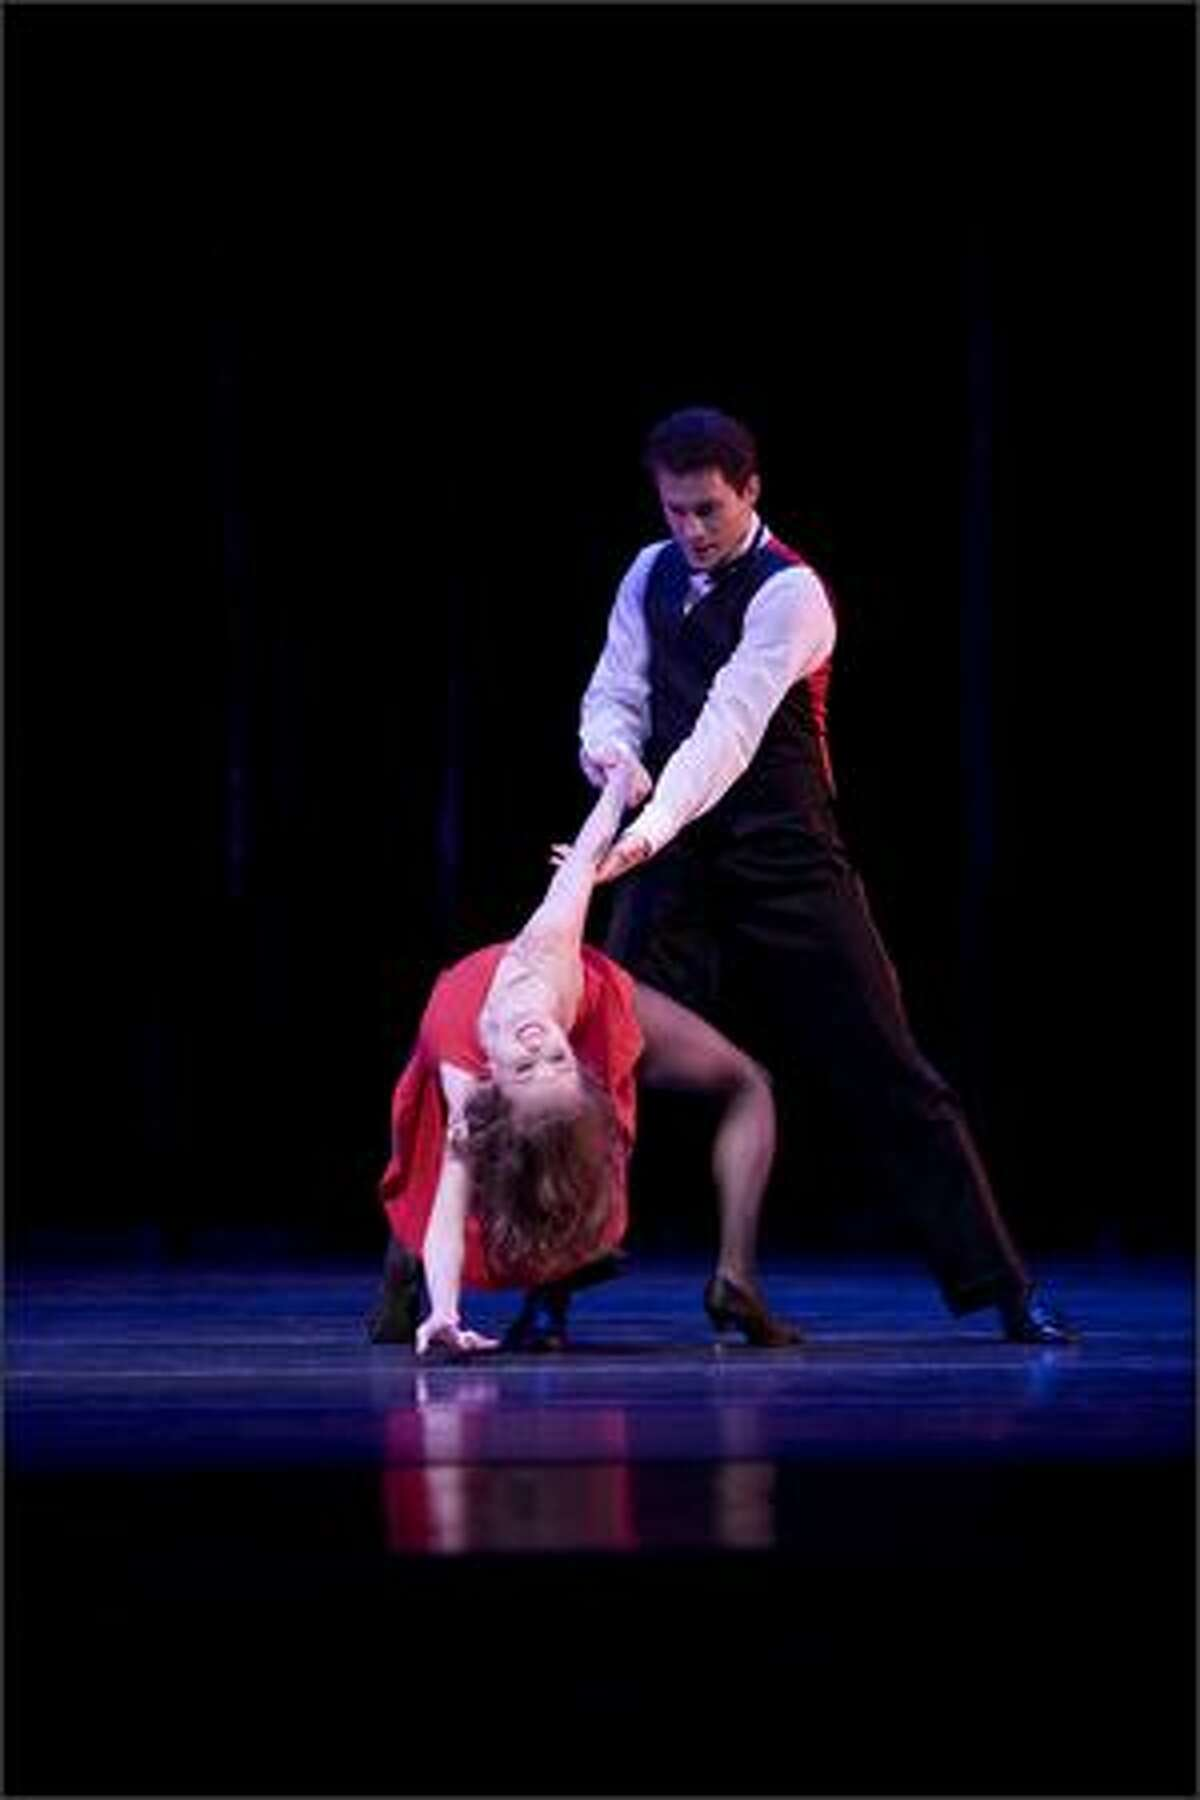 Pacific Northwest Ballet principal dancer Louise Nadeau and soloist Seth Orza in Twyla Tharp's Nine Sinatra Songs.